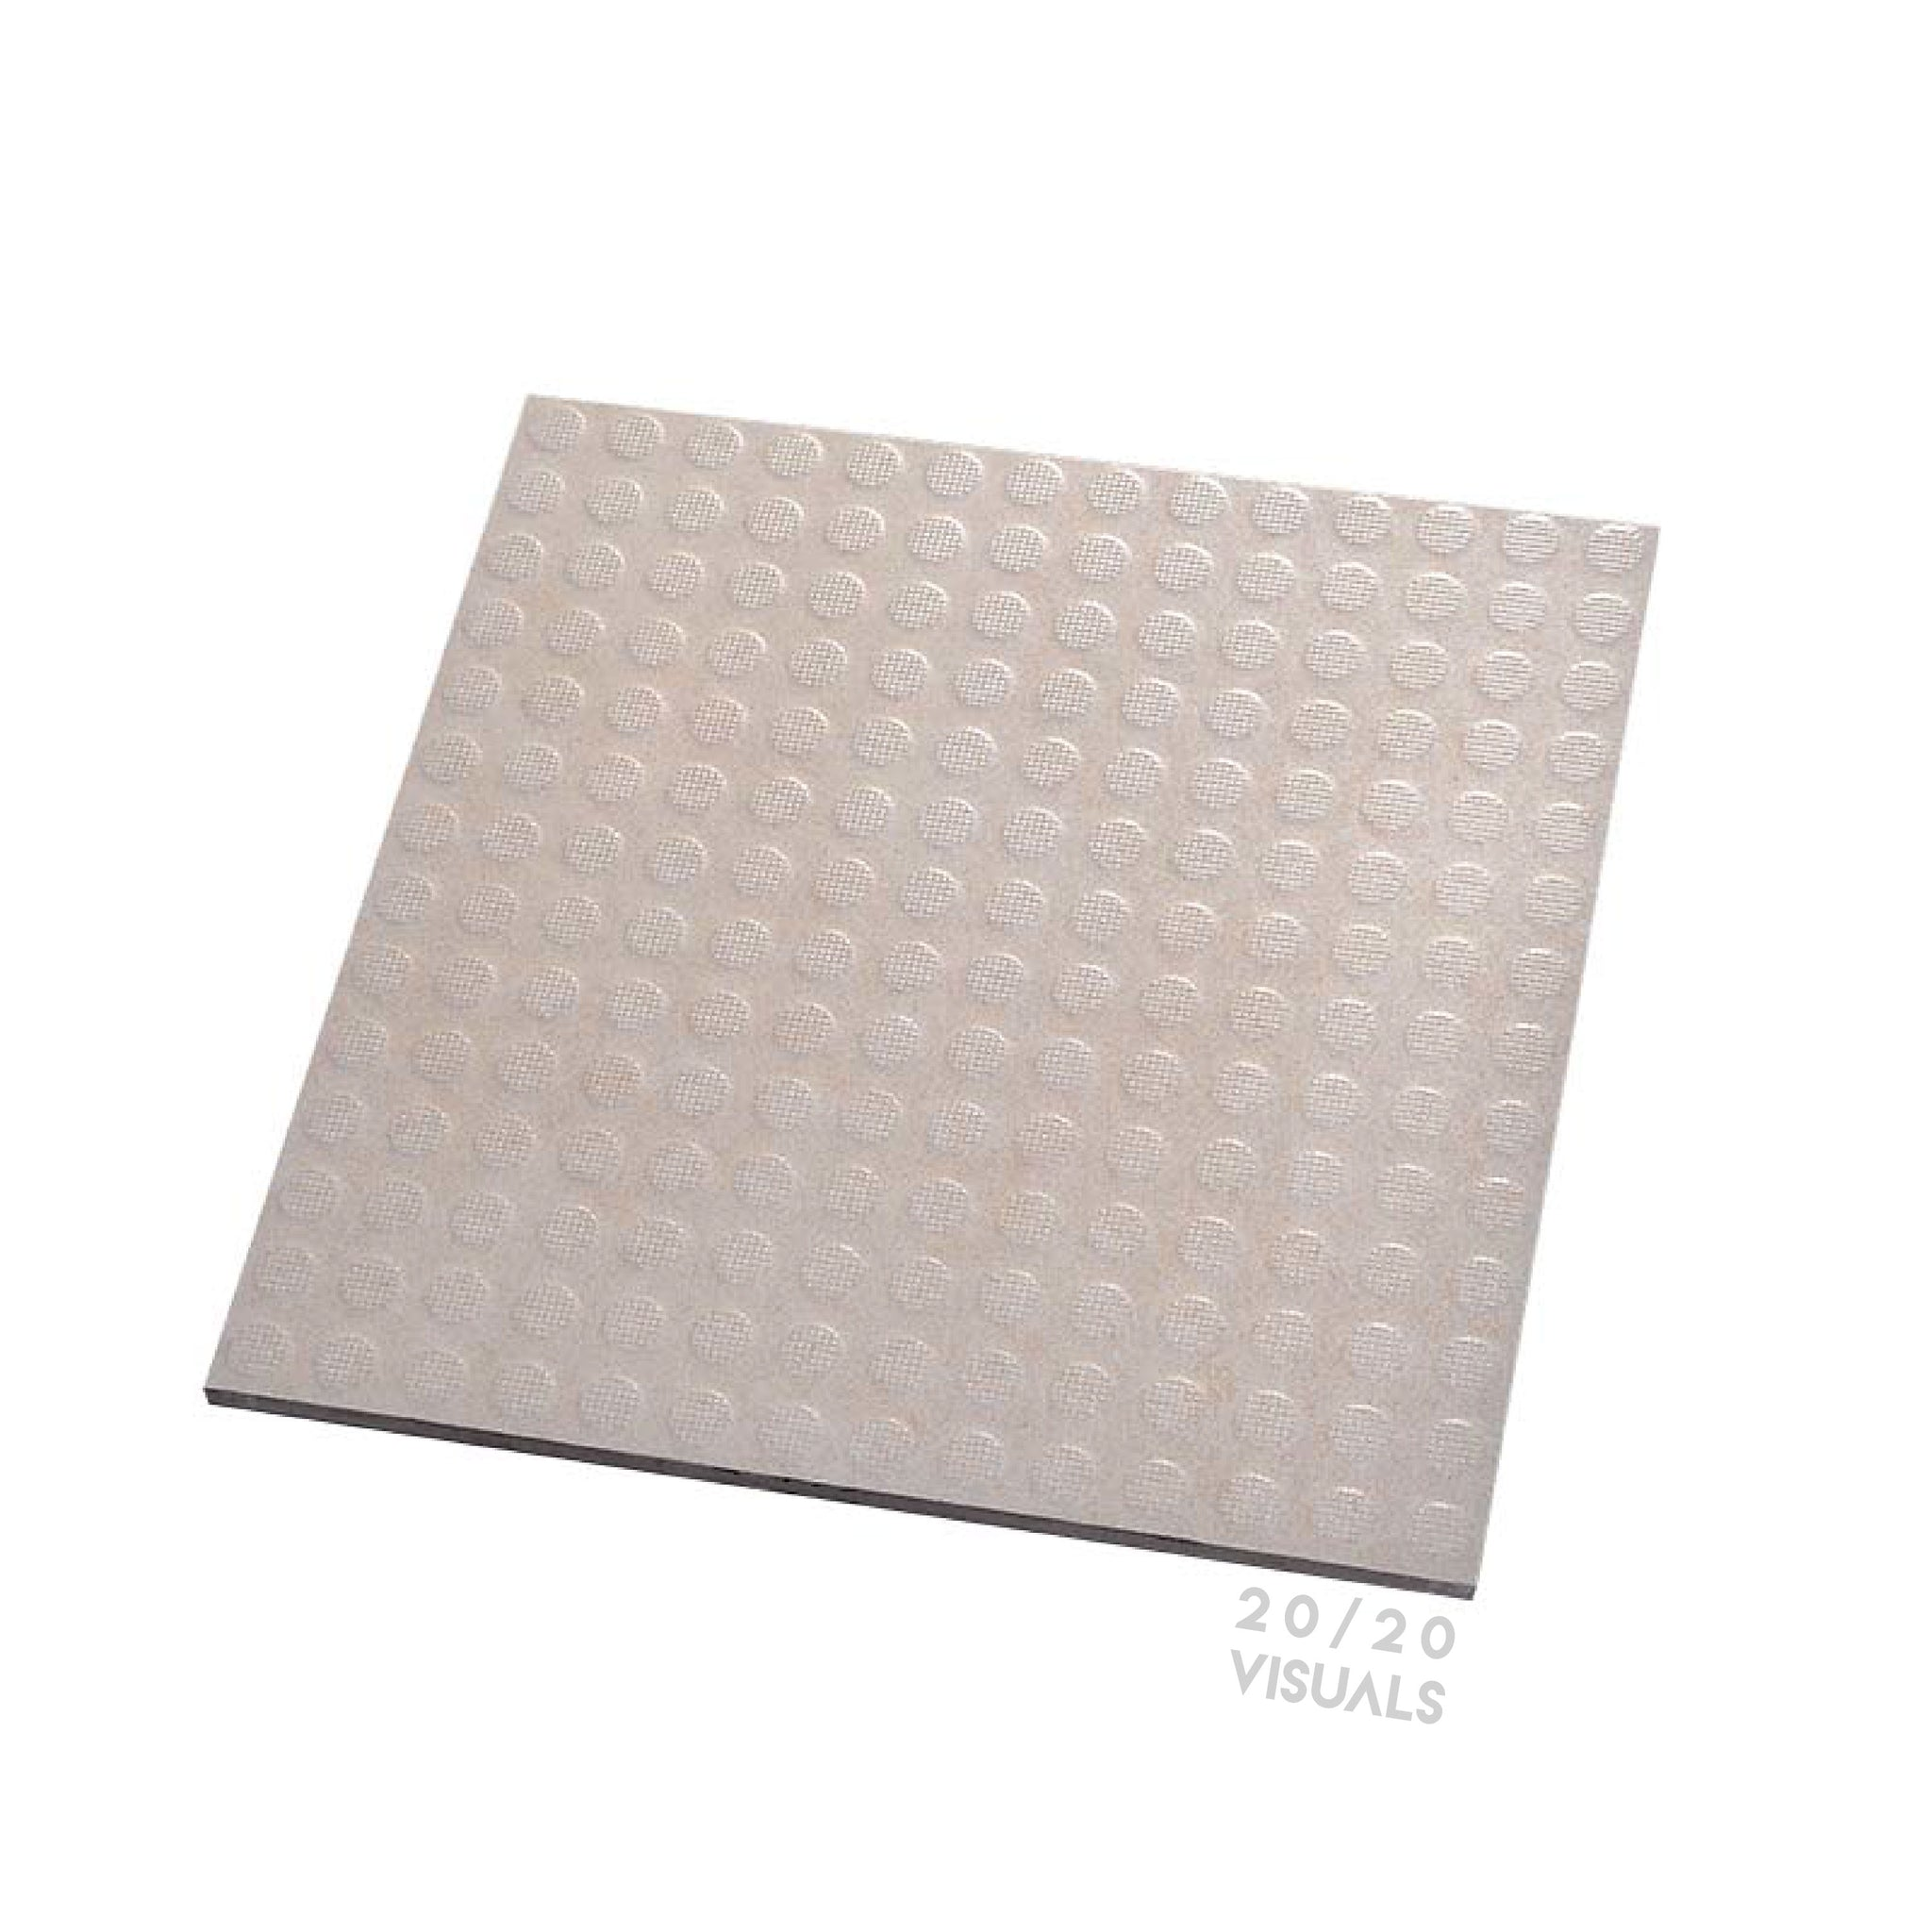 30X30 Spot Textured Ceramic Tile